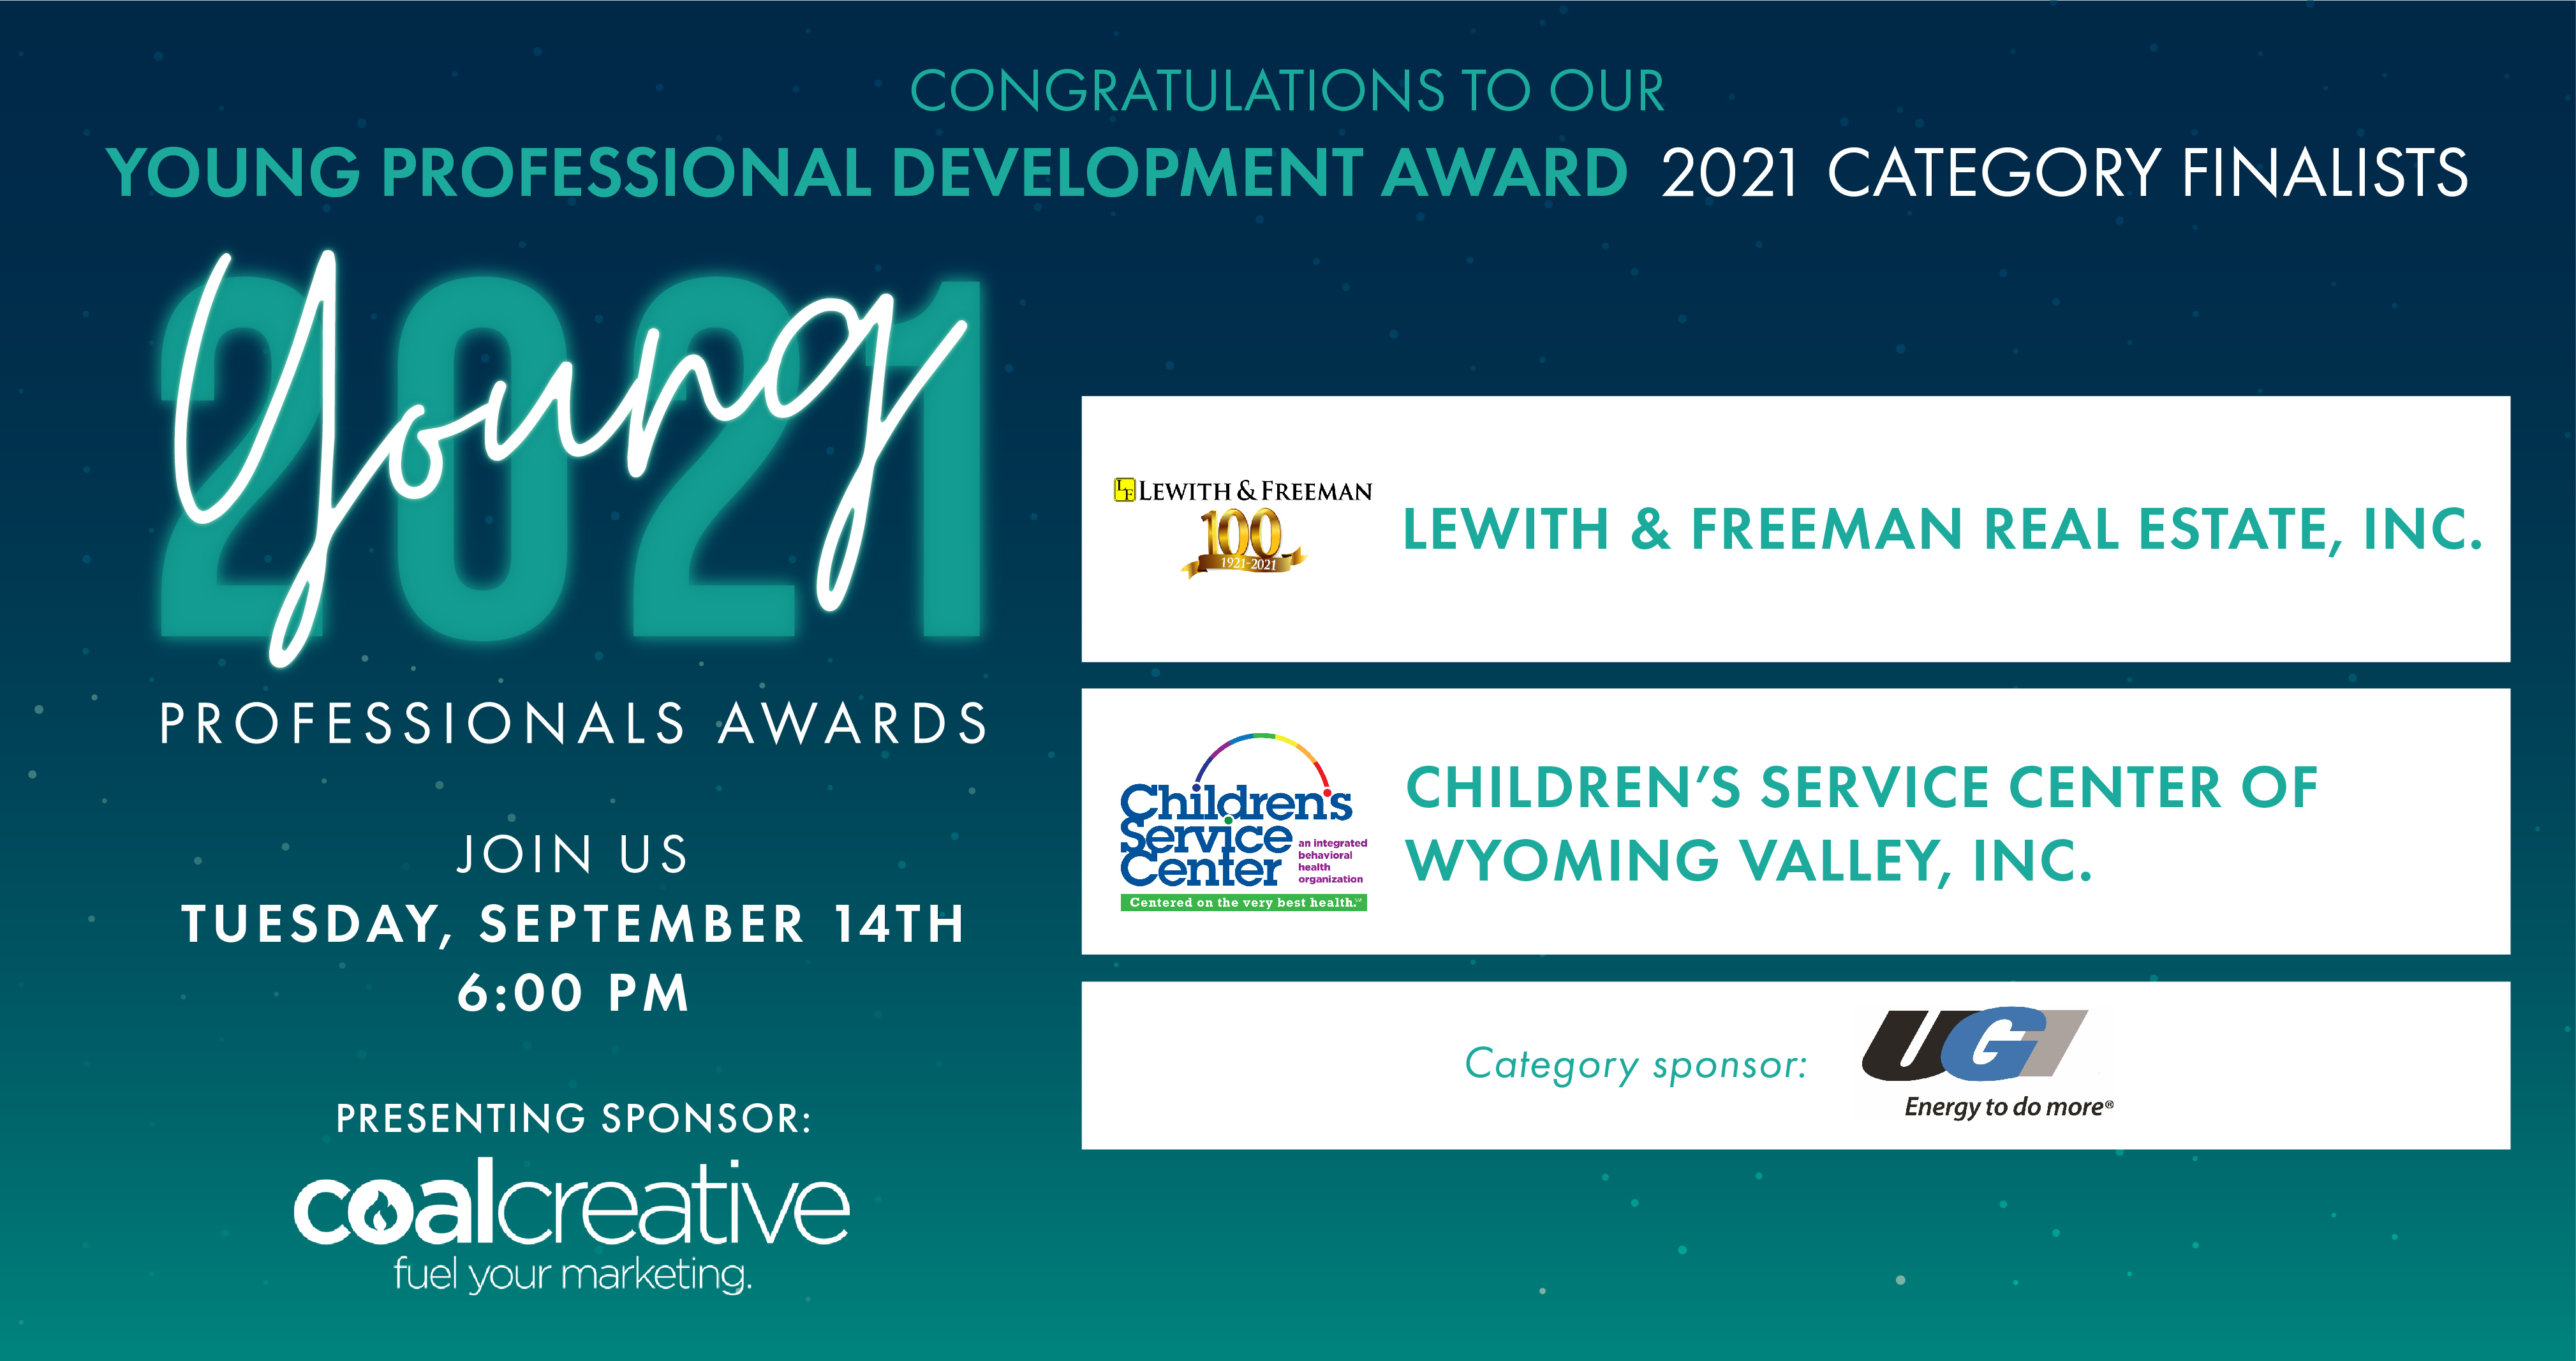 Meet the 2021 Category Finalists for the Young Professional Development Award!